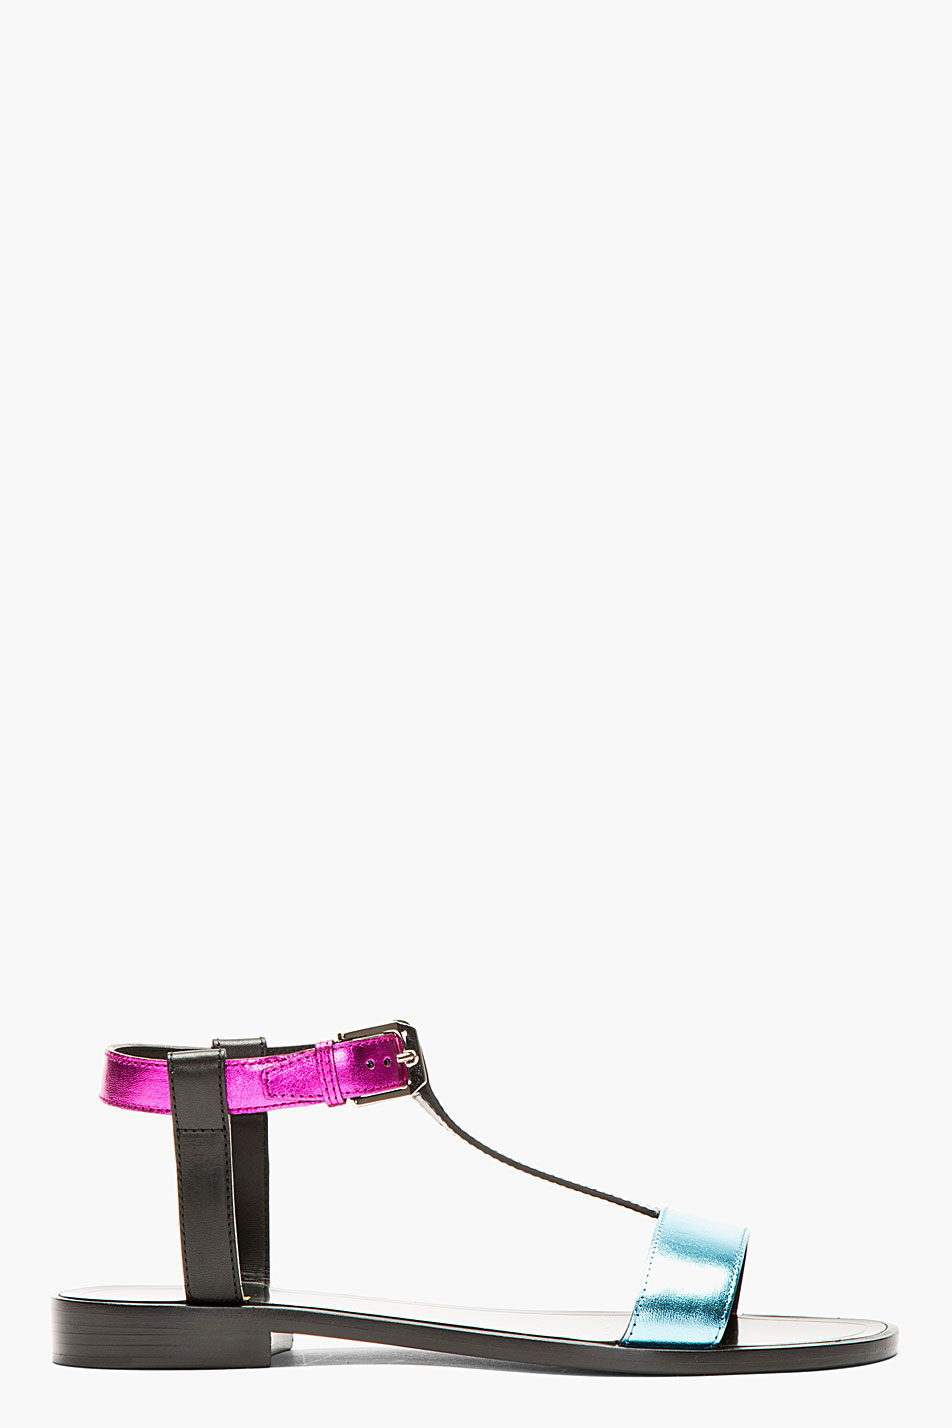 saint laurent magenta and blue metallic leather sandals